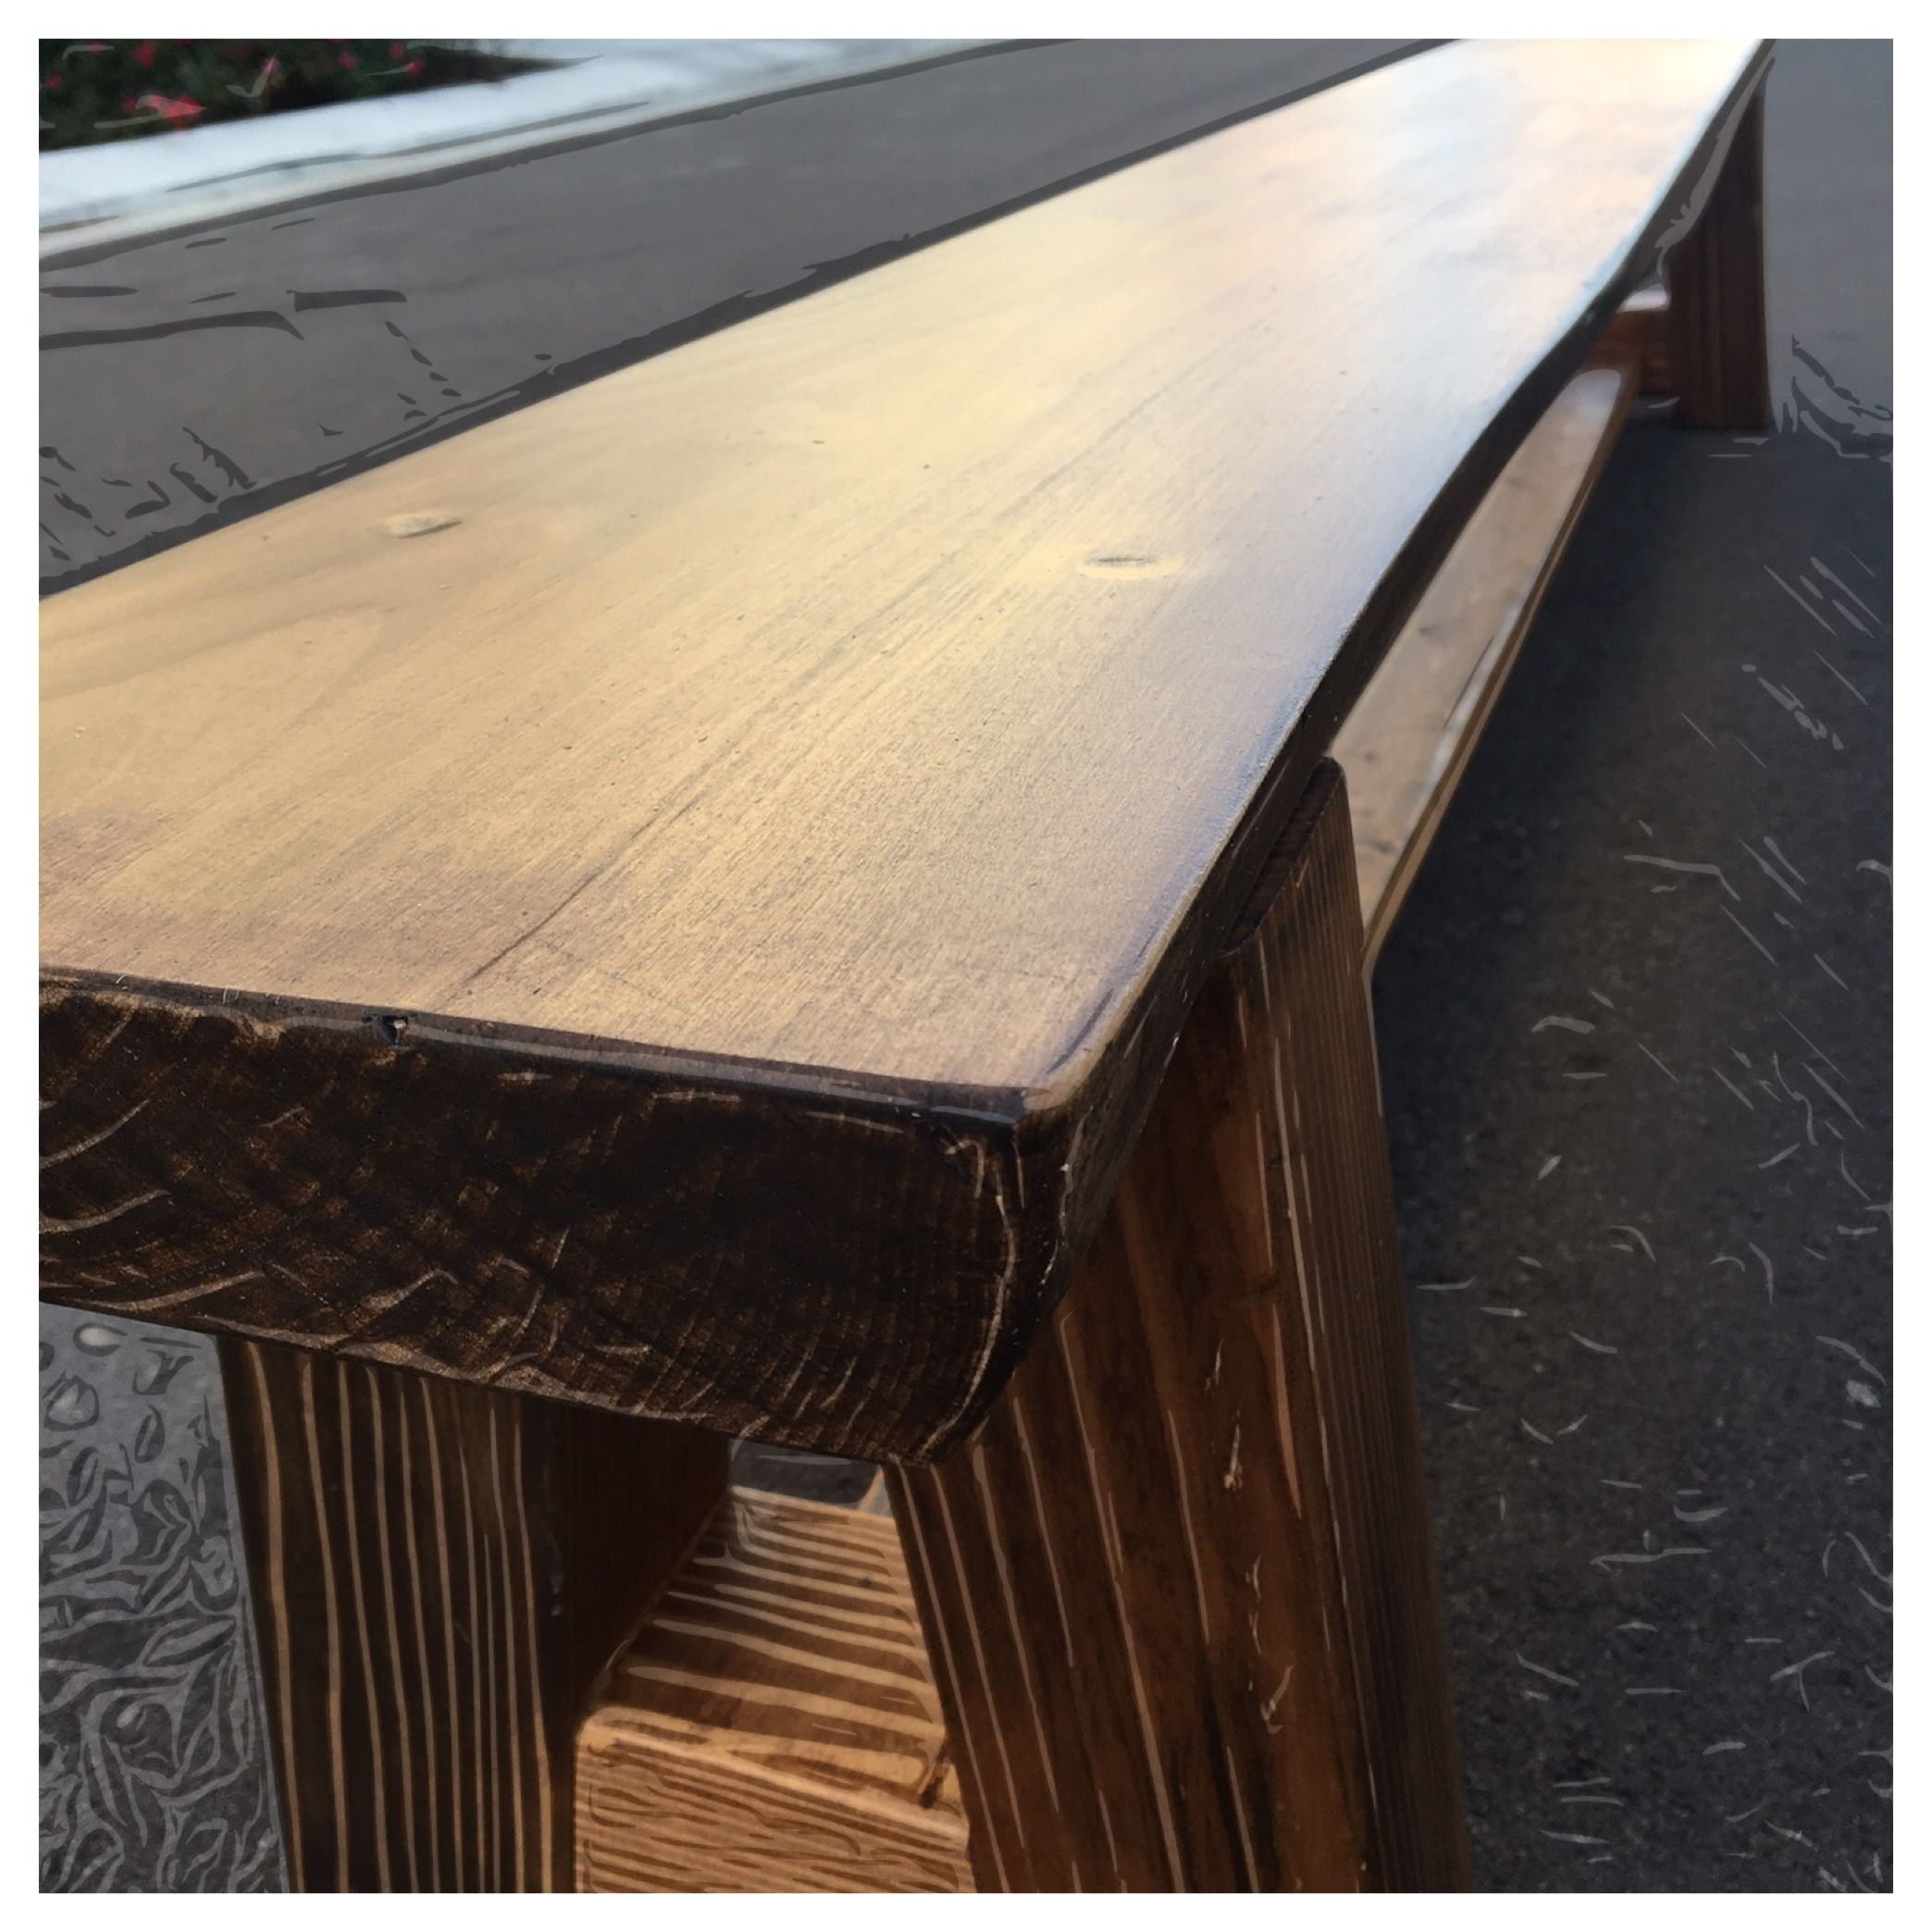 Unique Wood Benches: Custom Made Wood Bench By Pautek's Woodworking